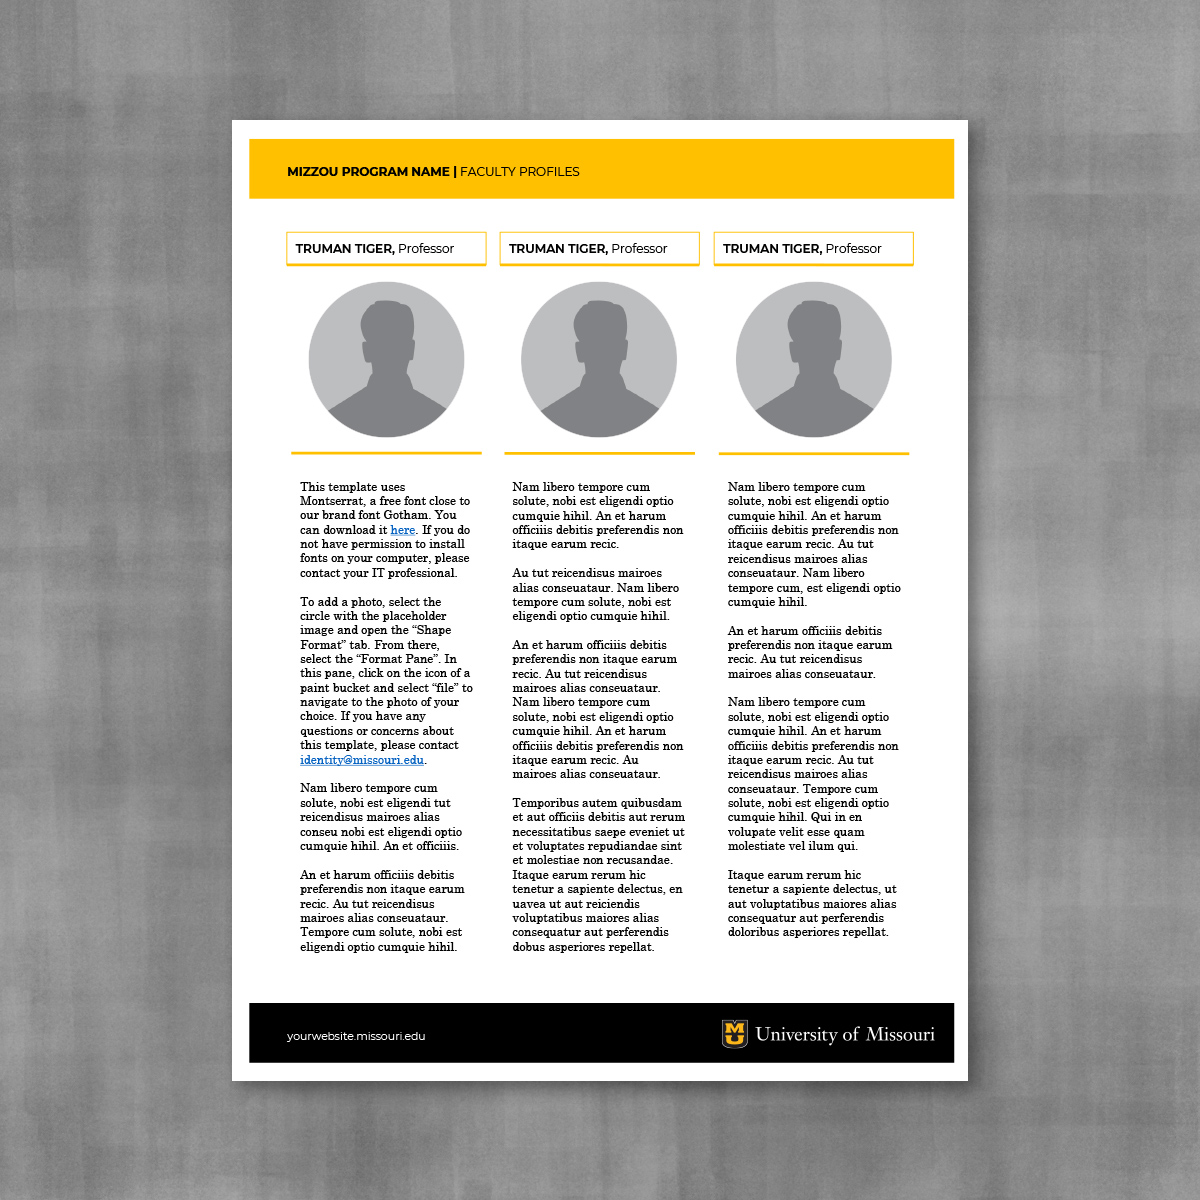 Personnel profile template for three people